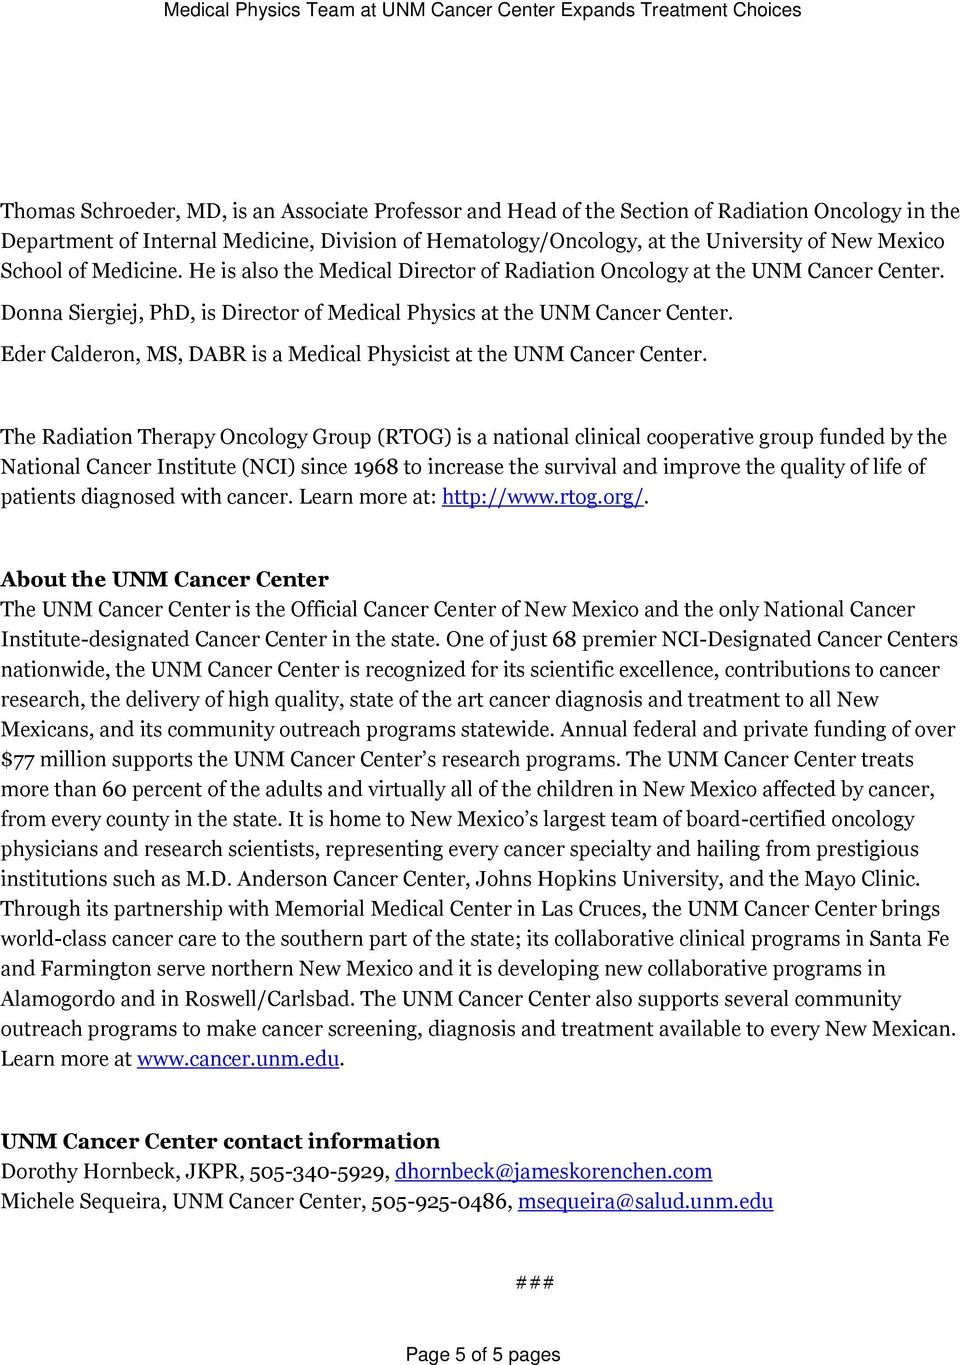 Eder Calderon, MS, DABR is a Medical Physicist at the UNM Cancer Center.